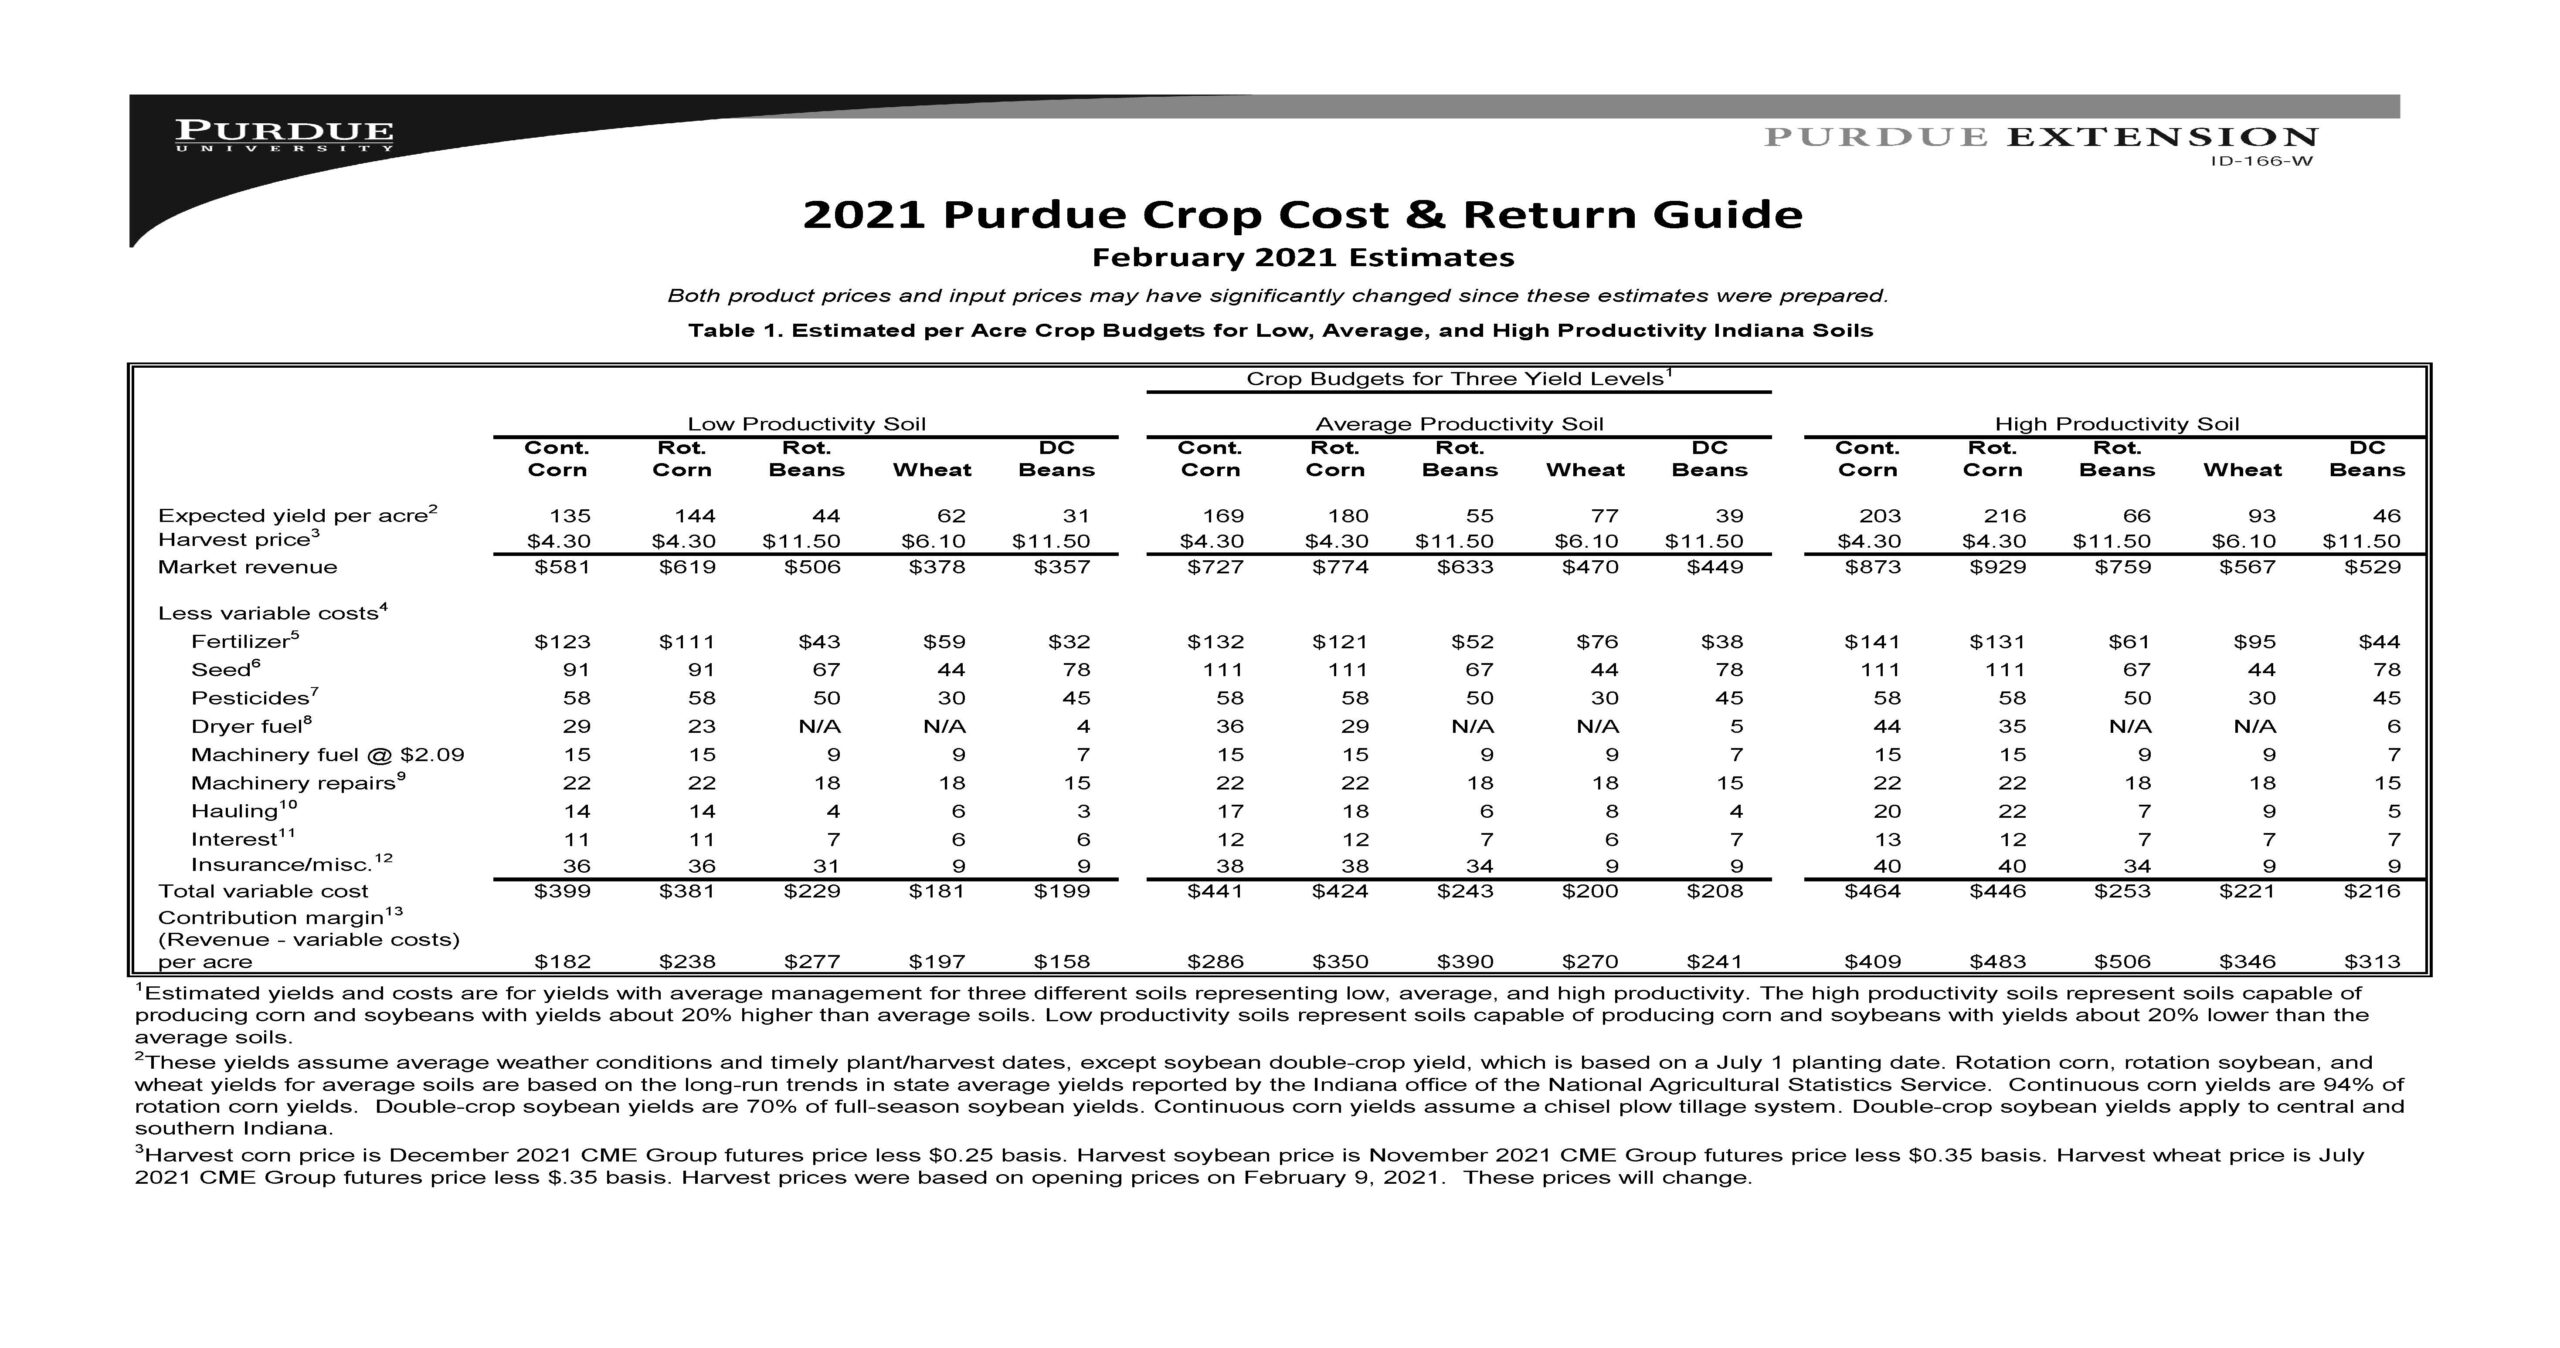 2021 Crop Budget Guide, page 1